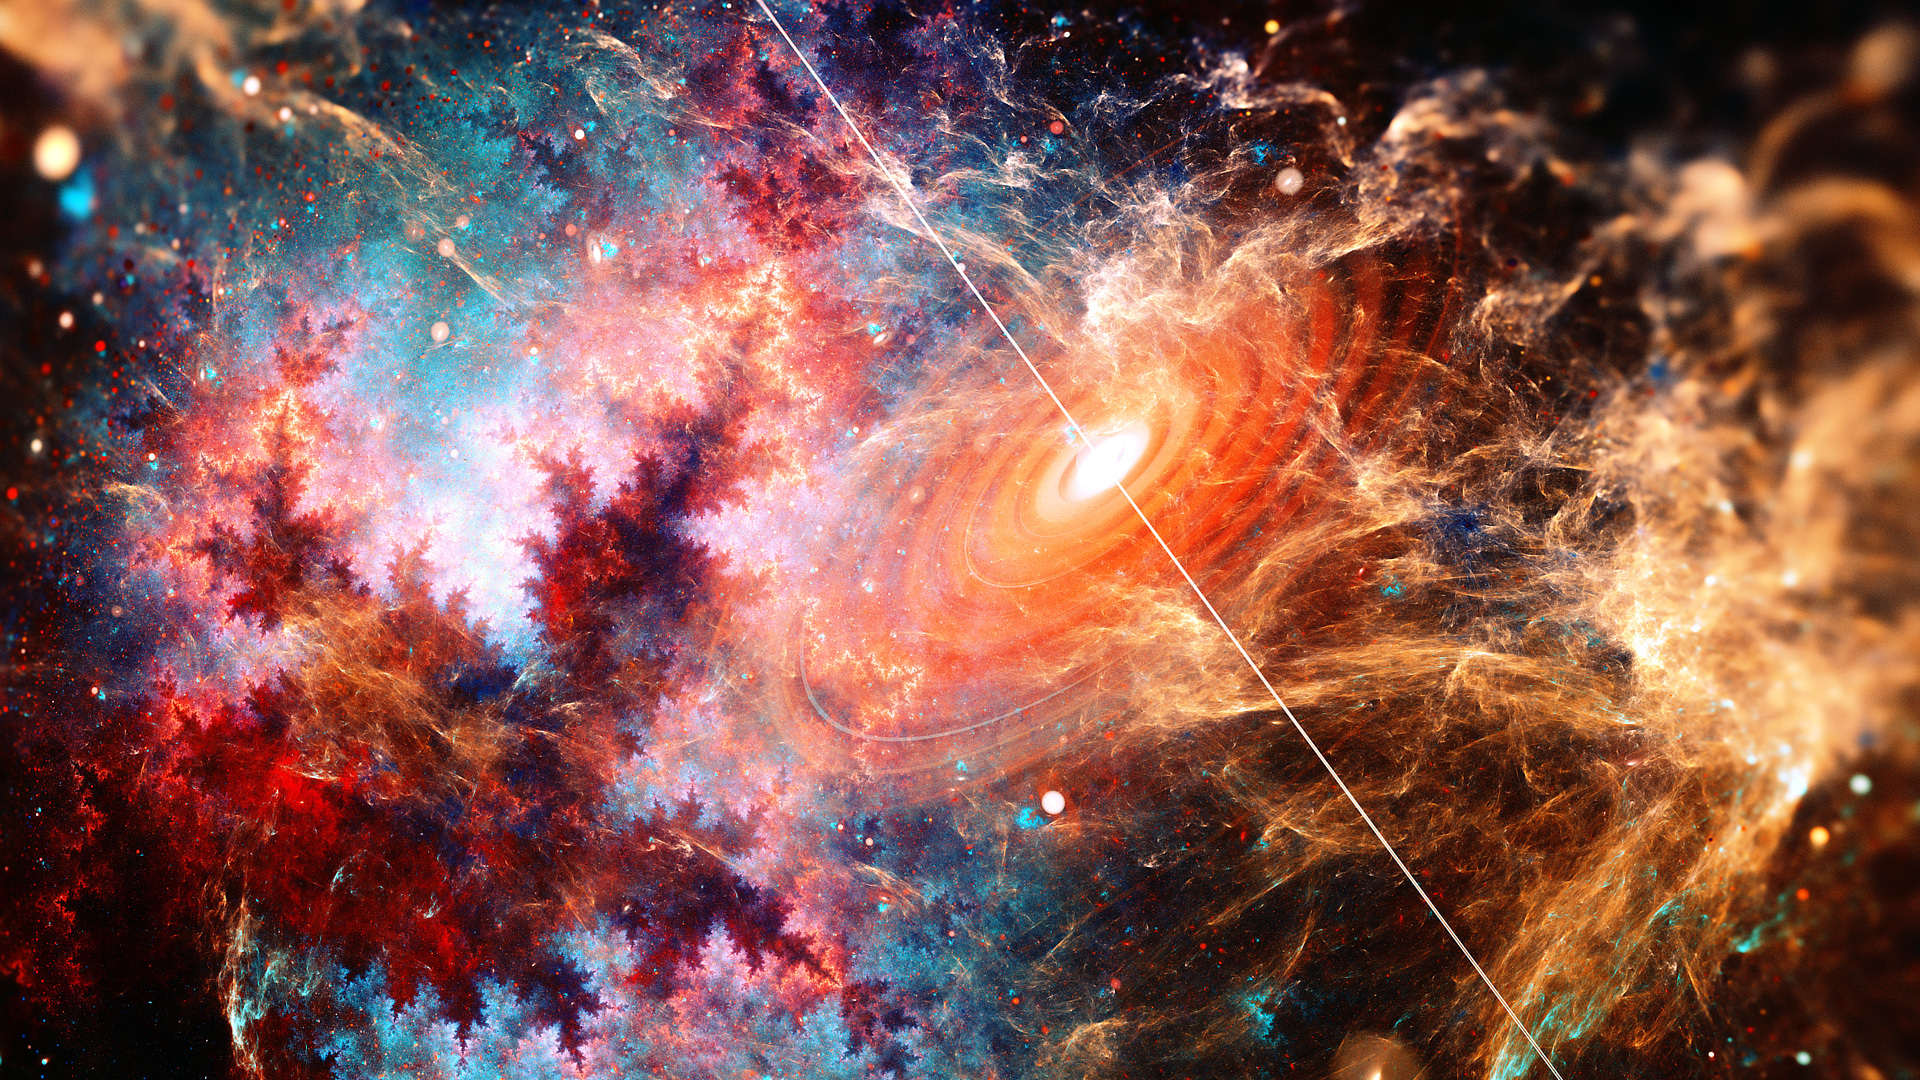 beautiful galaxy fractal art 4a